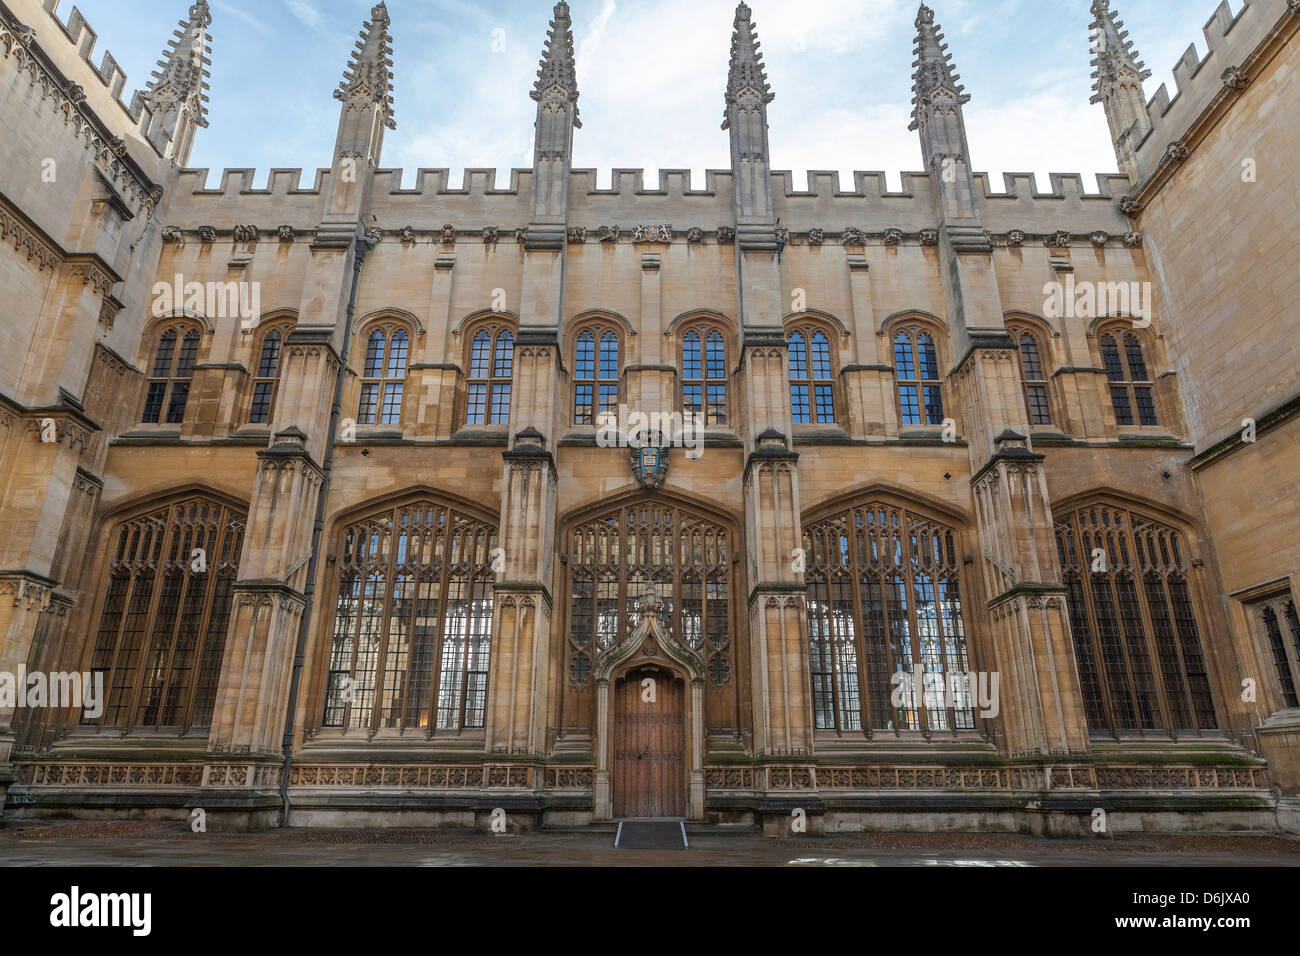 The Bodleian Library, Oxford, Oxfordshire, England, United Kingdom, Europe - Stock Image